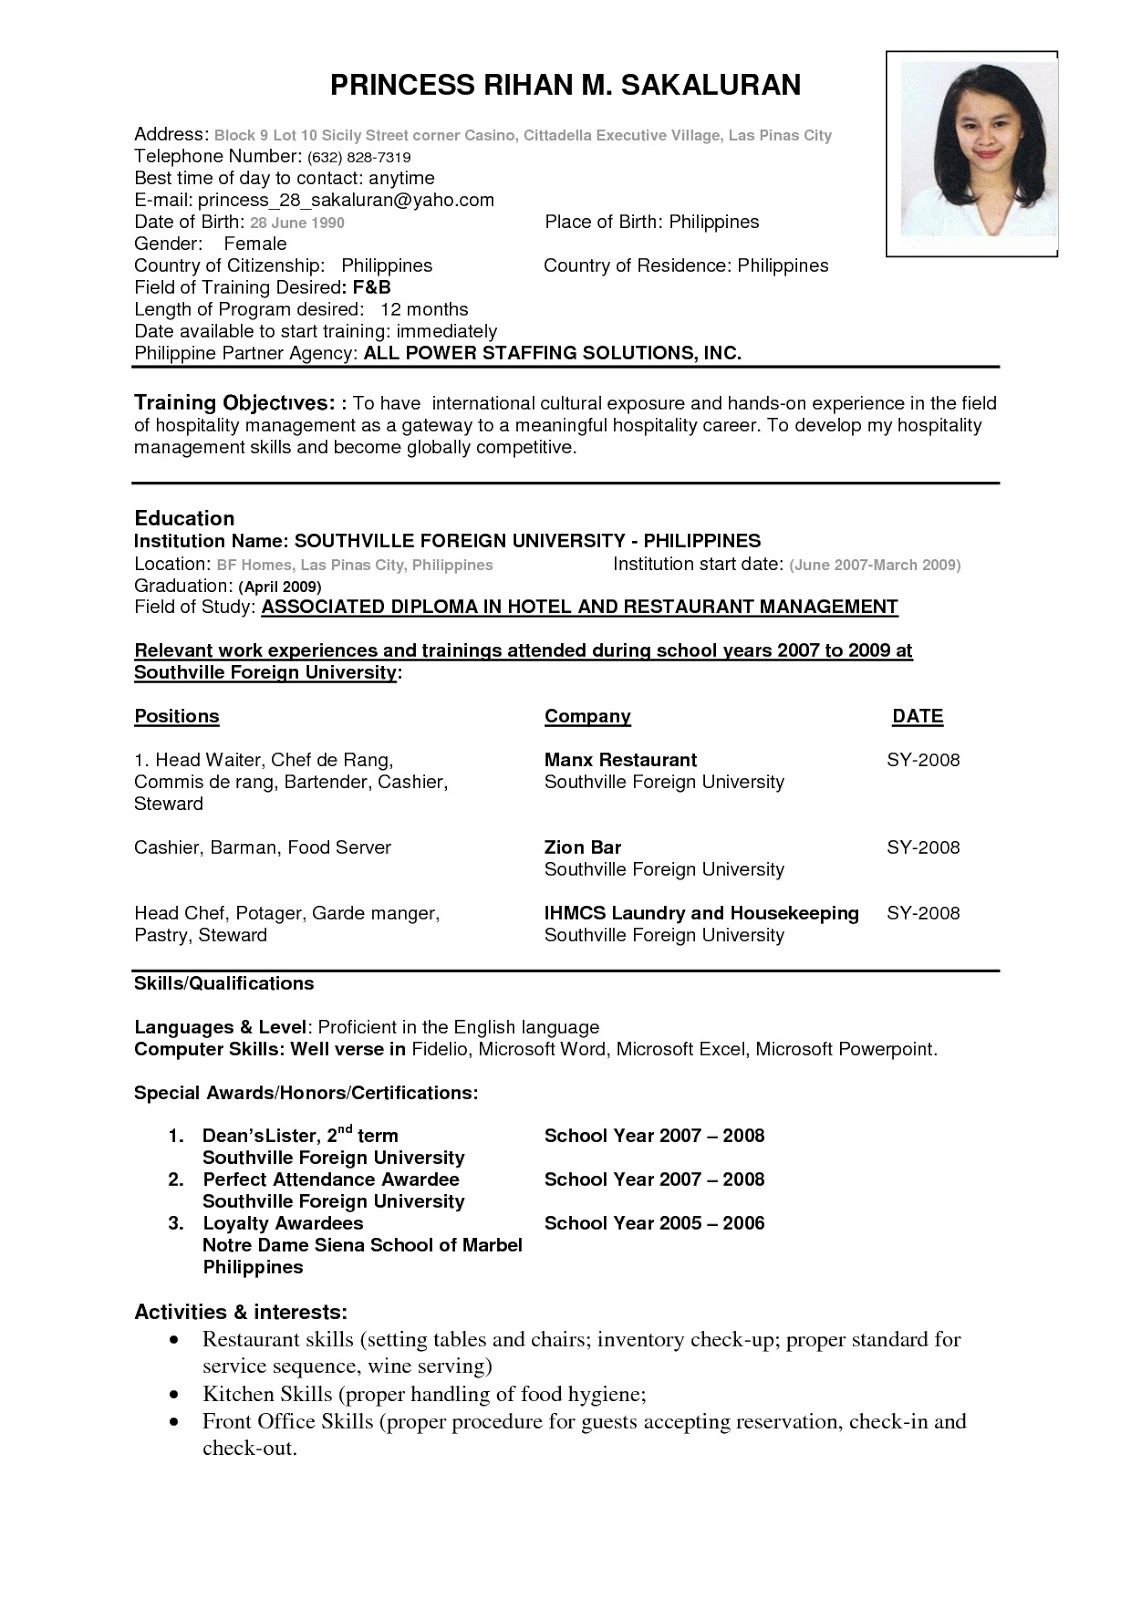 Resume Samples Pdf Sample Resumes Sample resume format